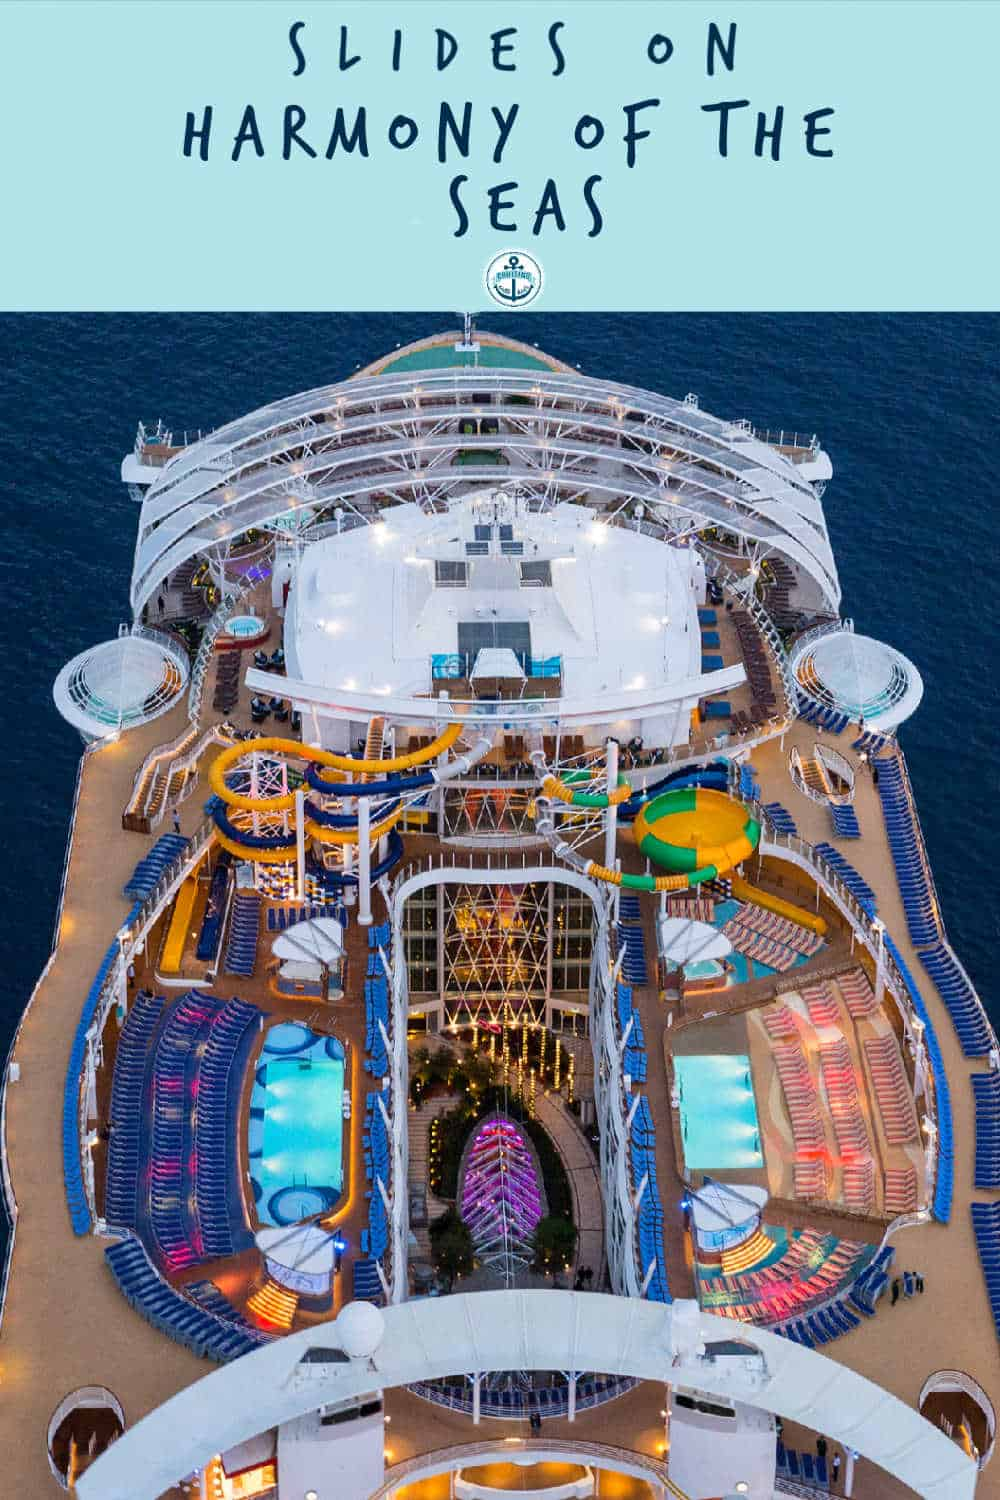 Everything you need to know about splash away bay, pools and slides on Harmony of the seas including weight and height restrictions copy